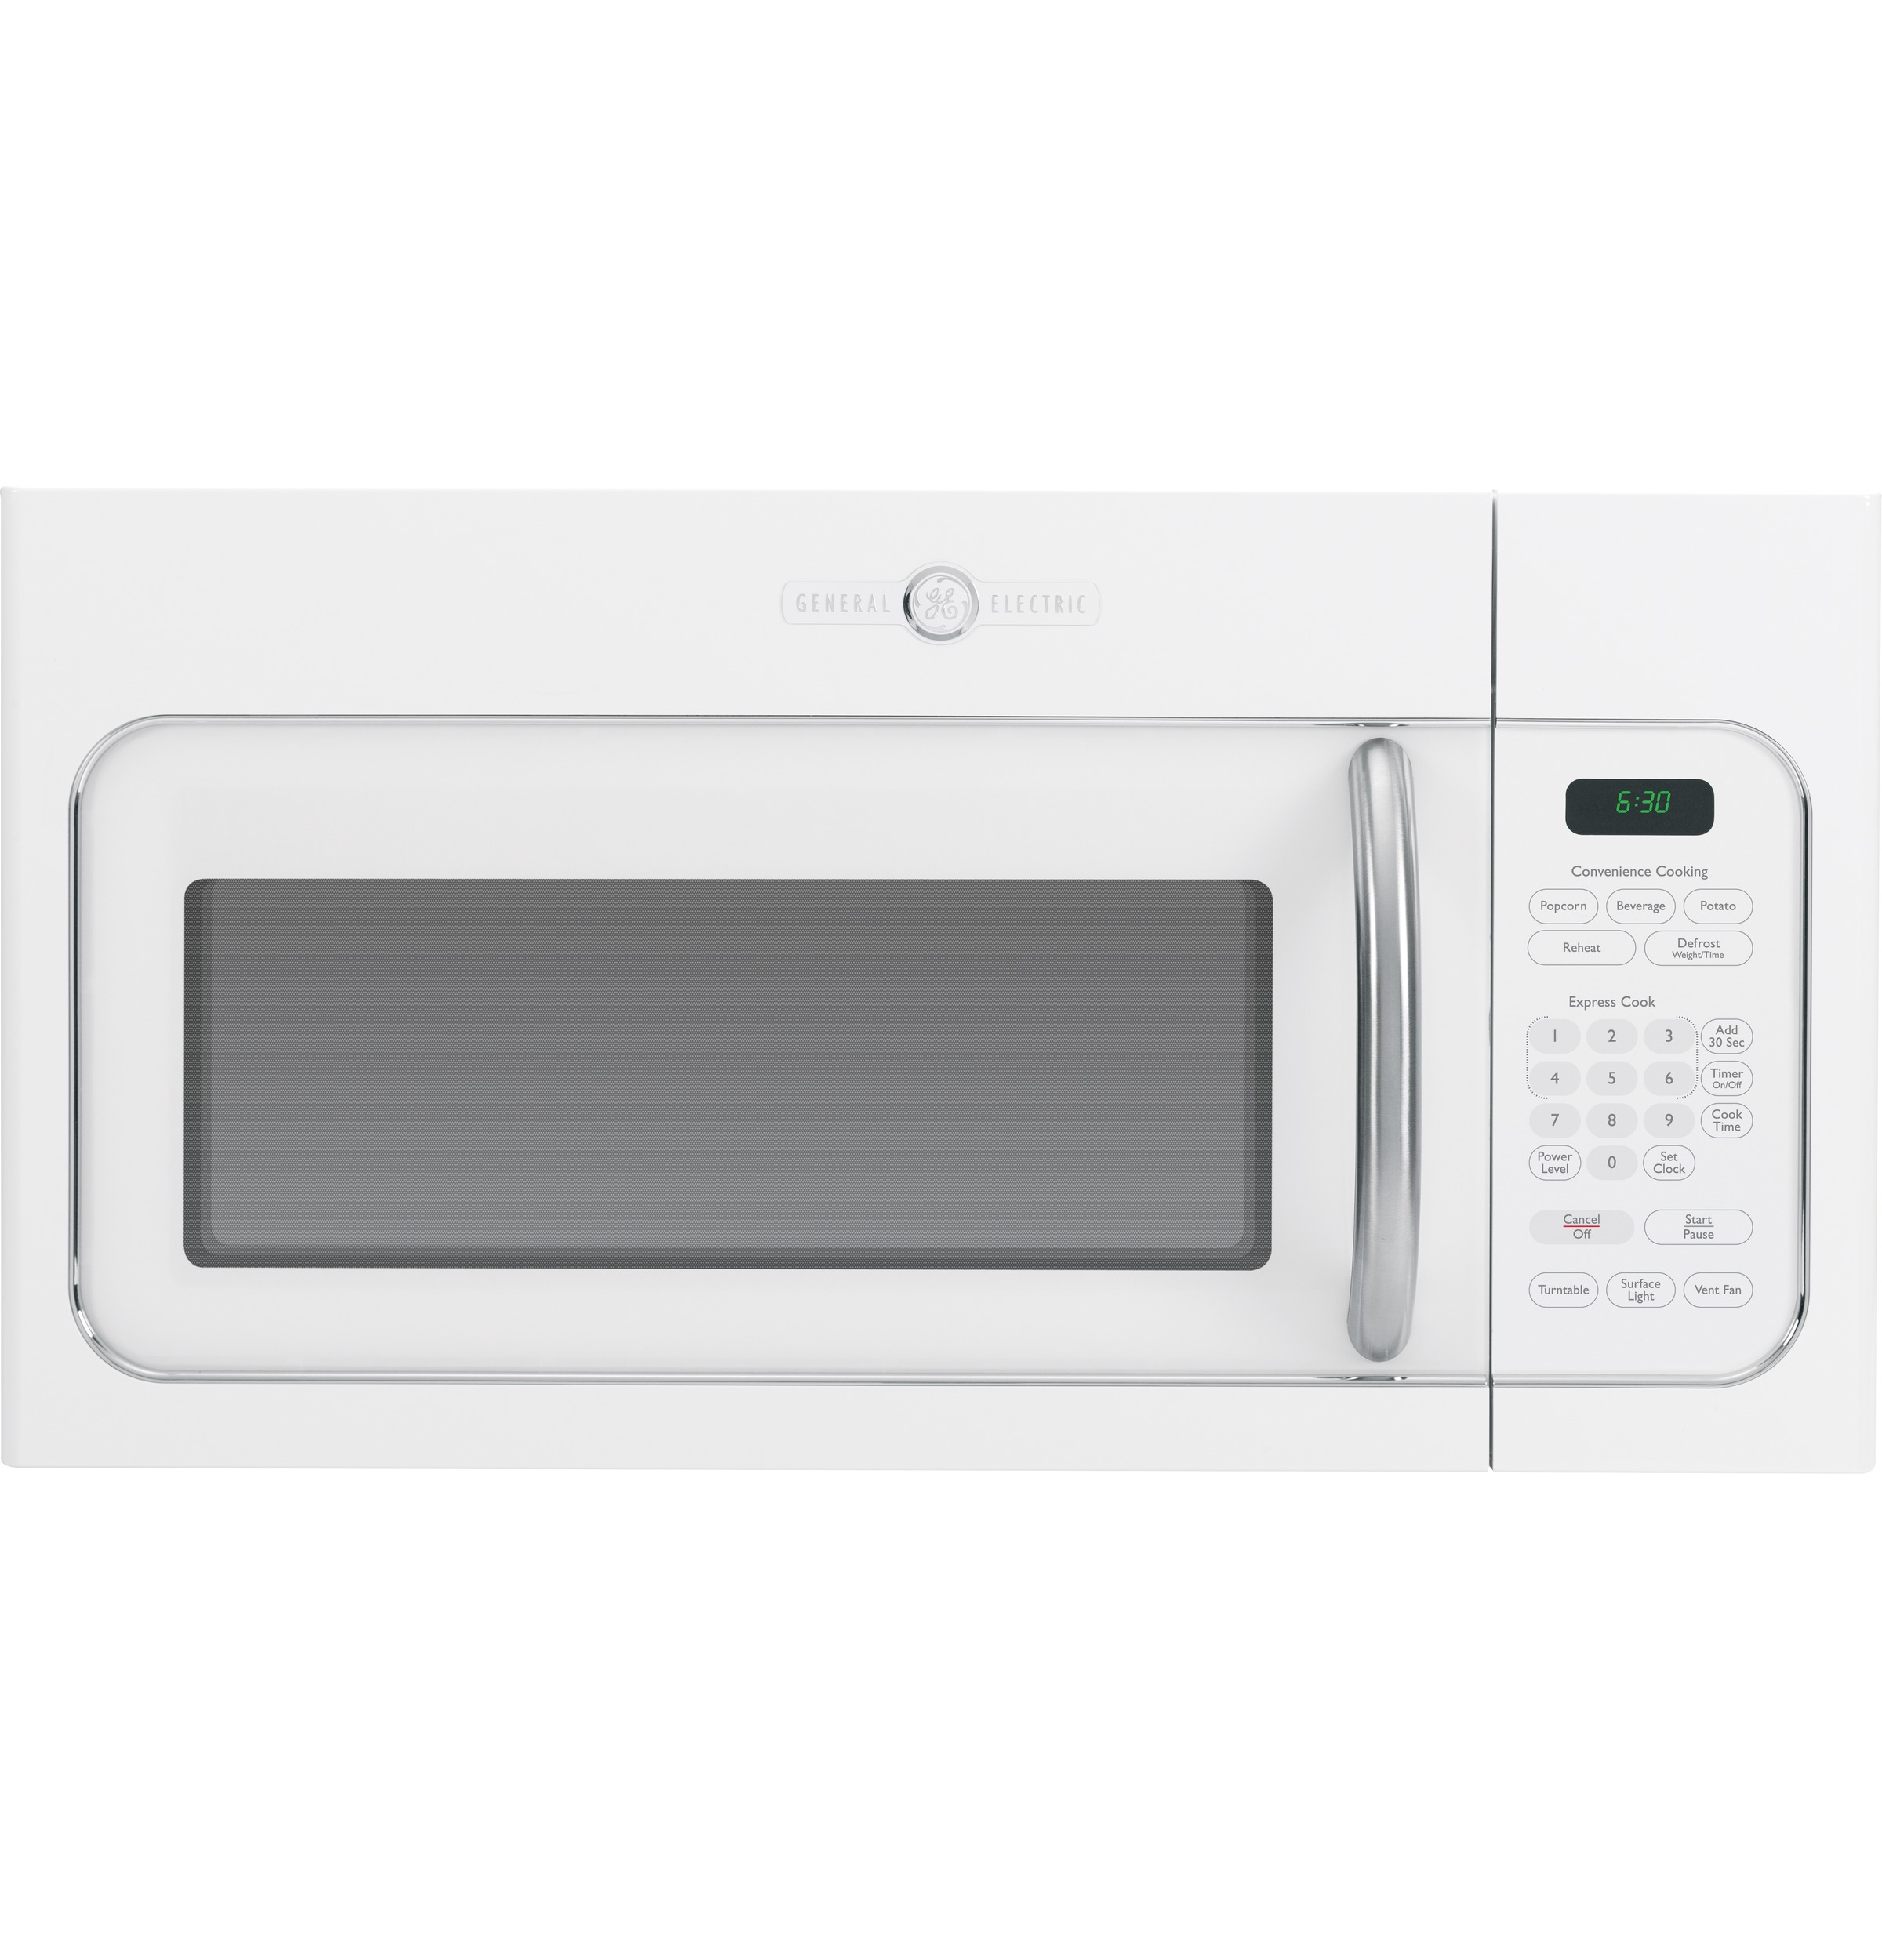 ge artistry series 1 6 cu ft over the range microwave oven avm4160dfws ge appliances. Black Bedroom Furniture Sets. Home Design Ideas